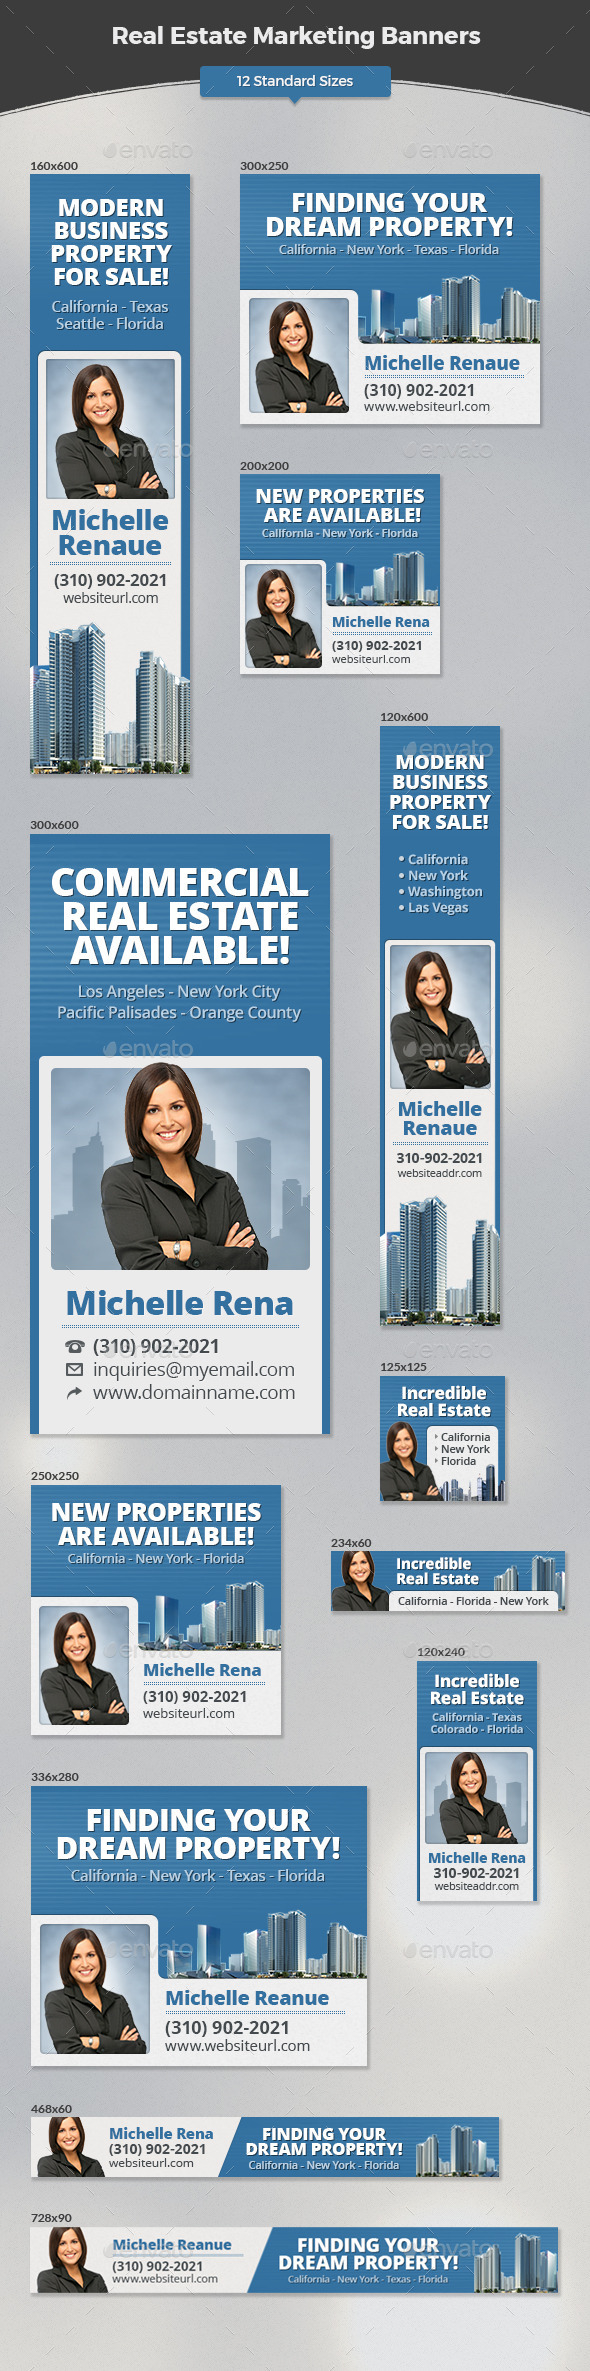 GraphicRiver Real Estate Marketing Banners 11787849